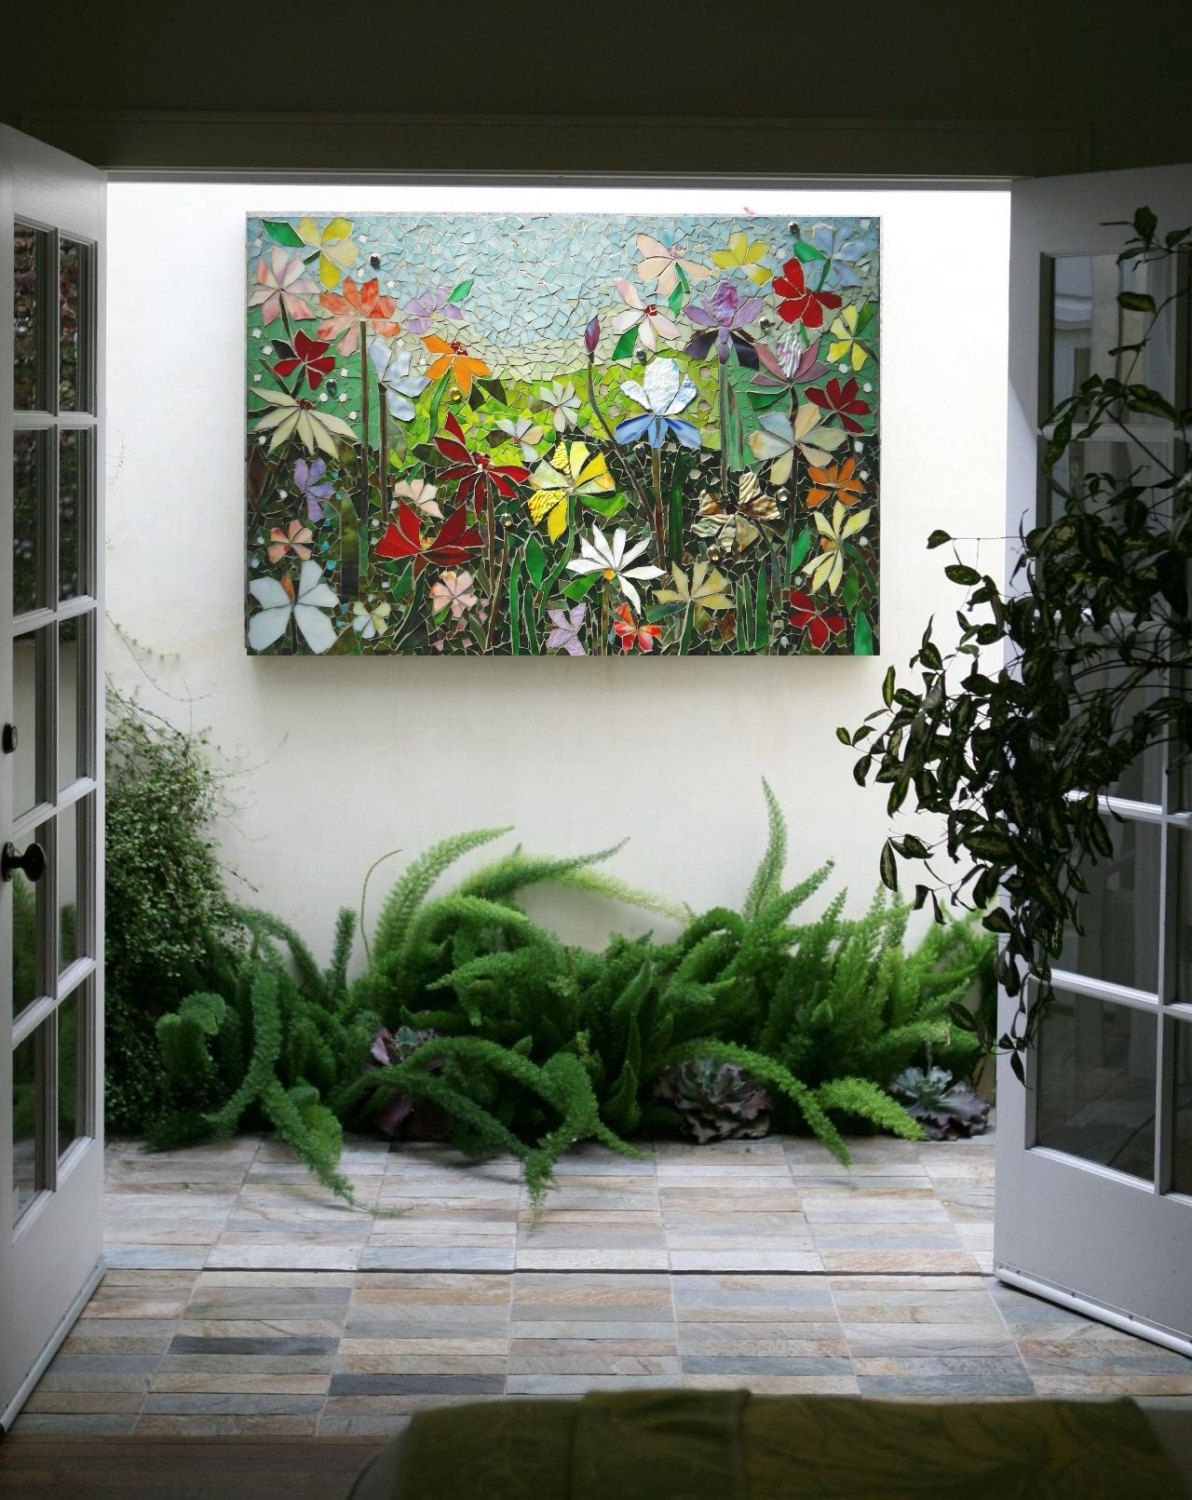 Most Recently Released Mosaic Wall Art Stained Glass Wall Decor Floral Garden Indoor Within Stained Glass Wall Art (View 8 of 15)